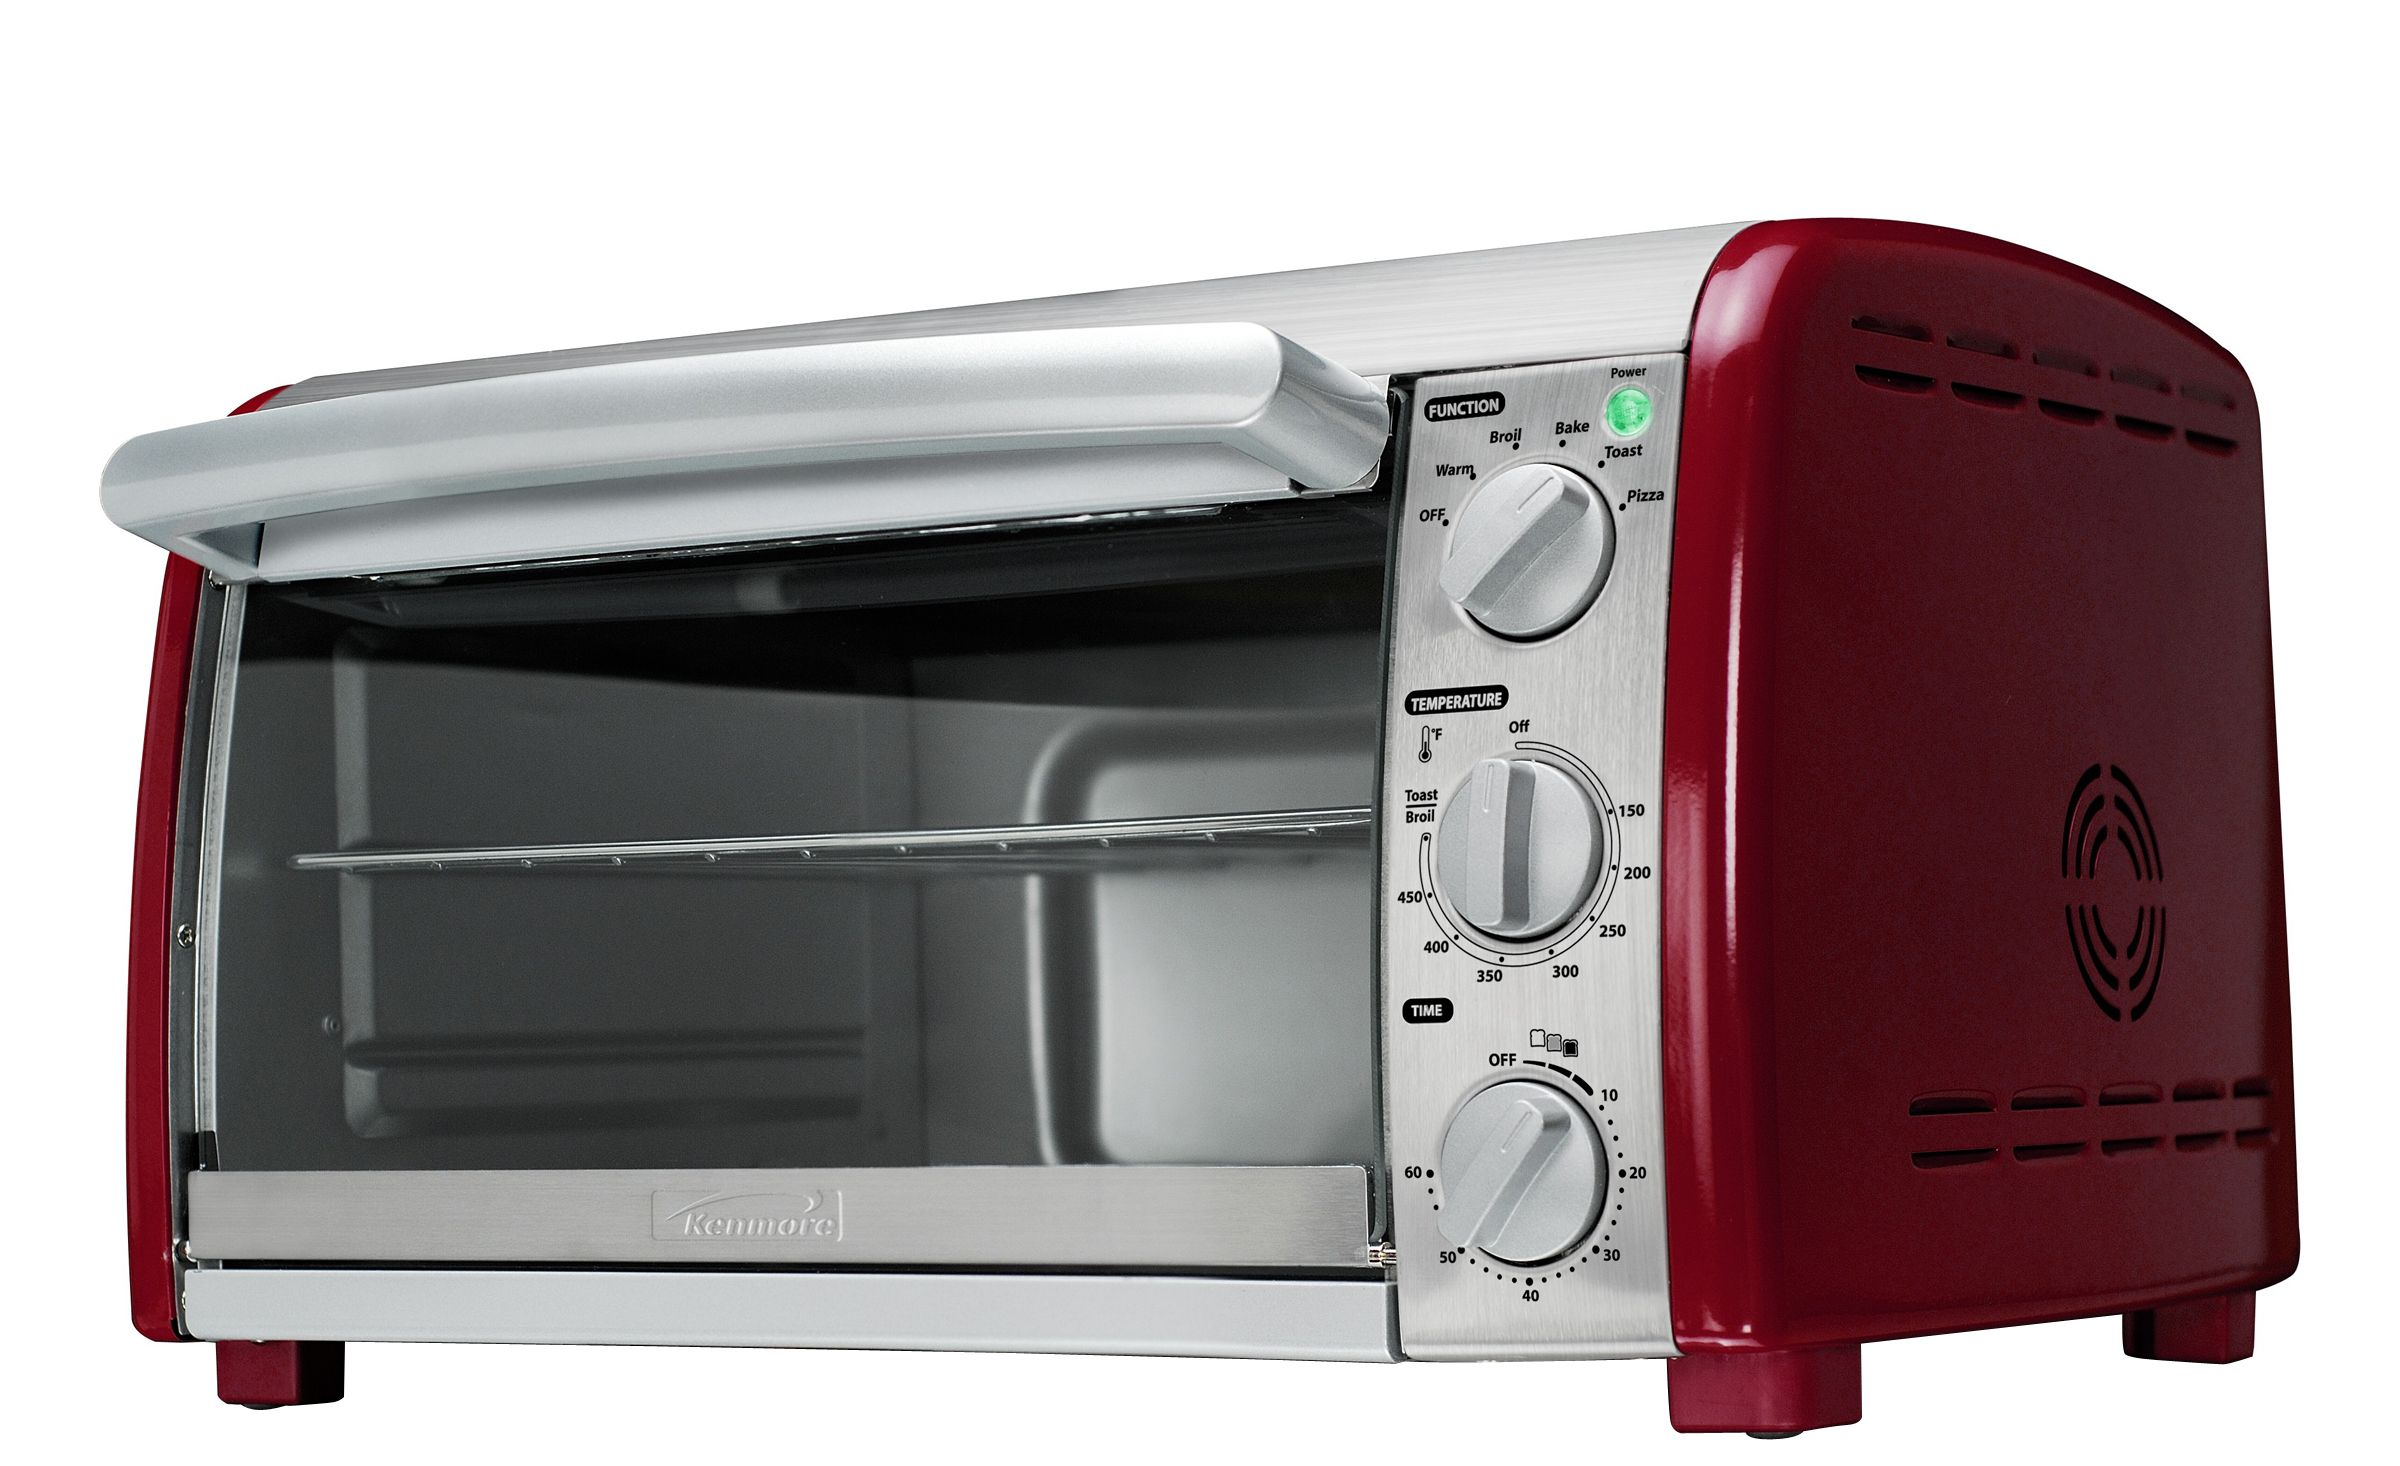 Kenmore 6-Slice Convection Toaster Oven -Red/Stainless Steel